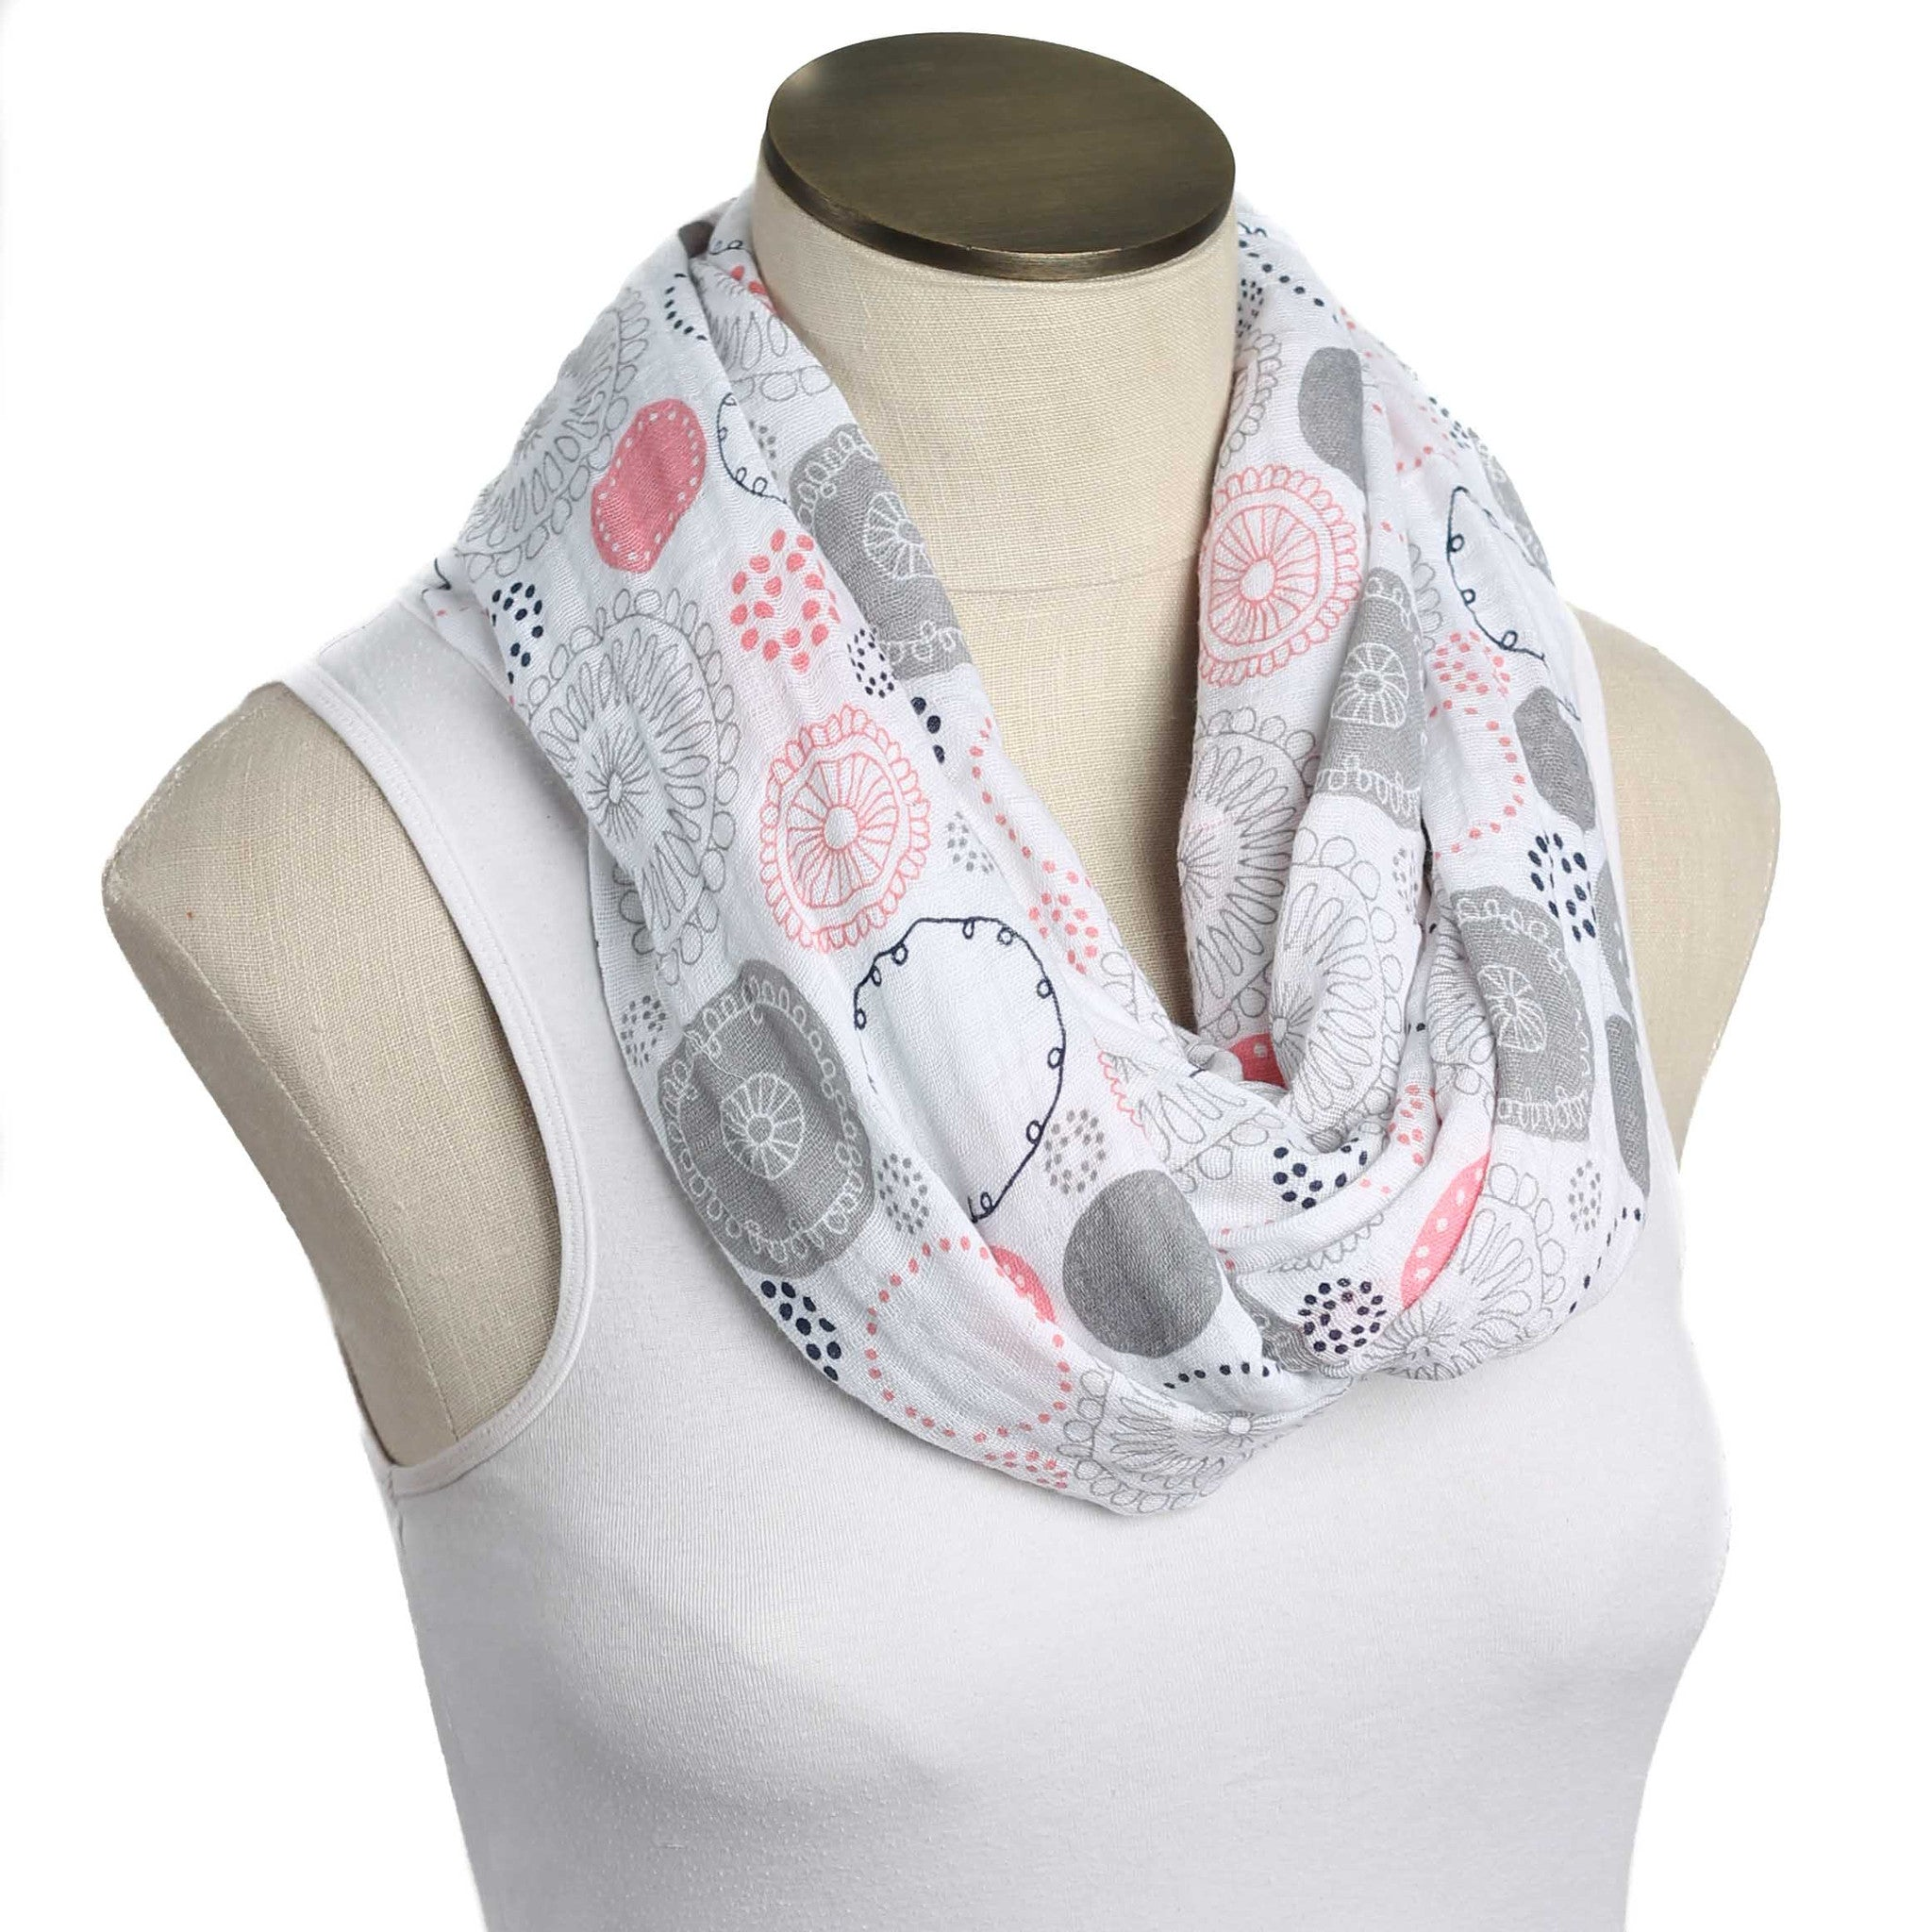 Sweet Whimsy Pink and Gray Circles Muslin Infinity Nursing Scarf 100% Cotton